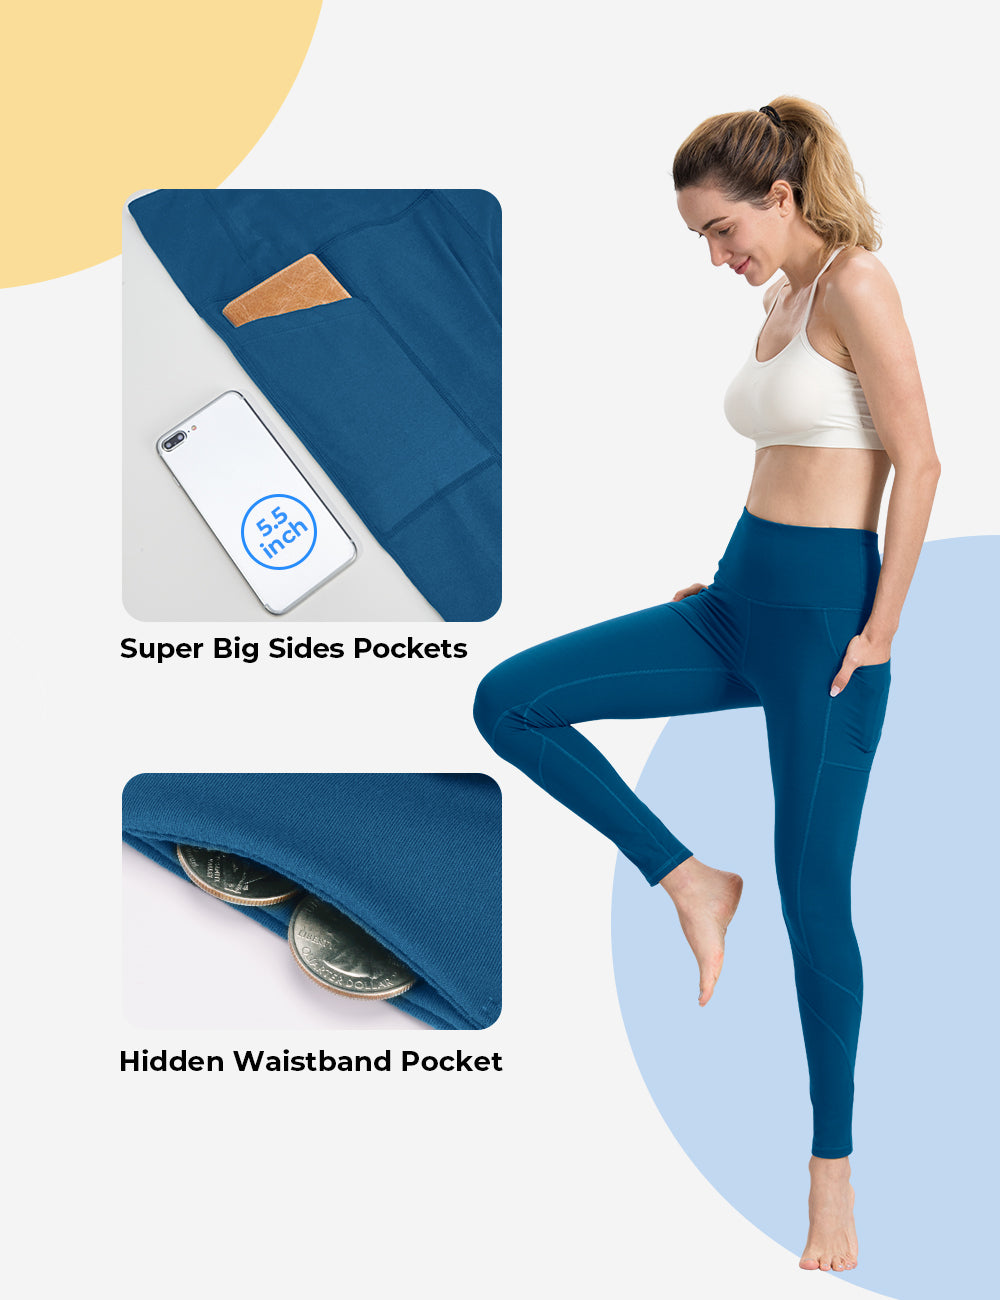 Classic Blue Yoga pants with pockets - ALONGFIT